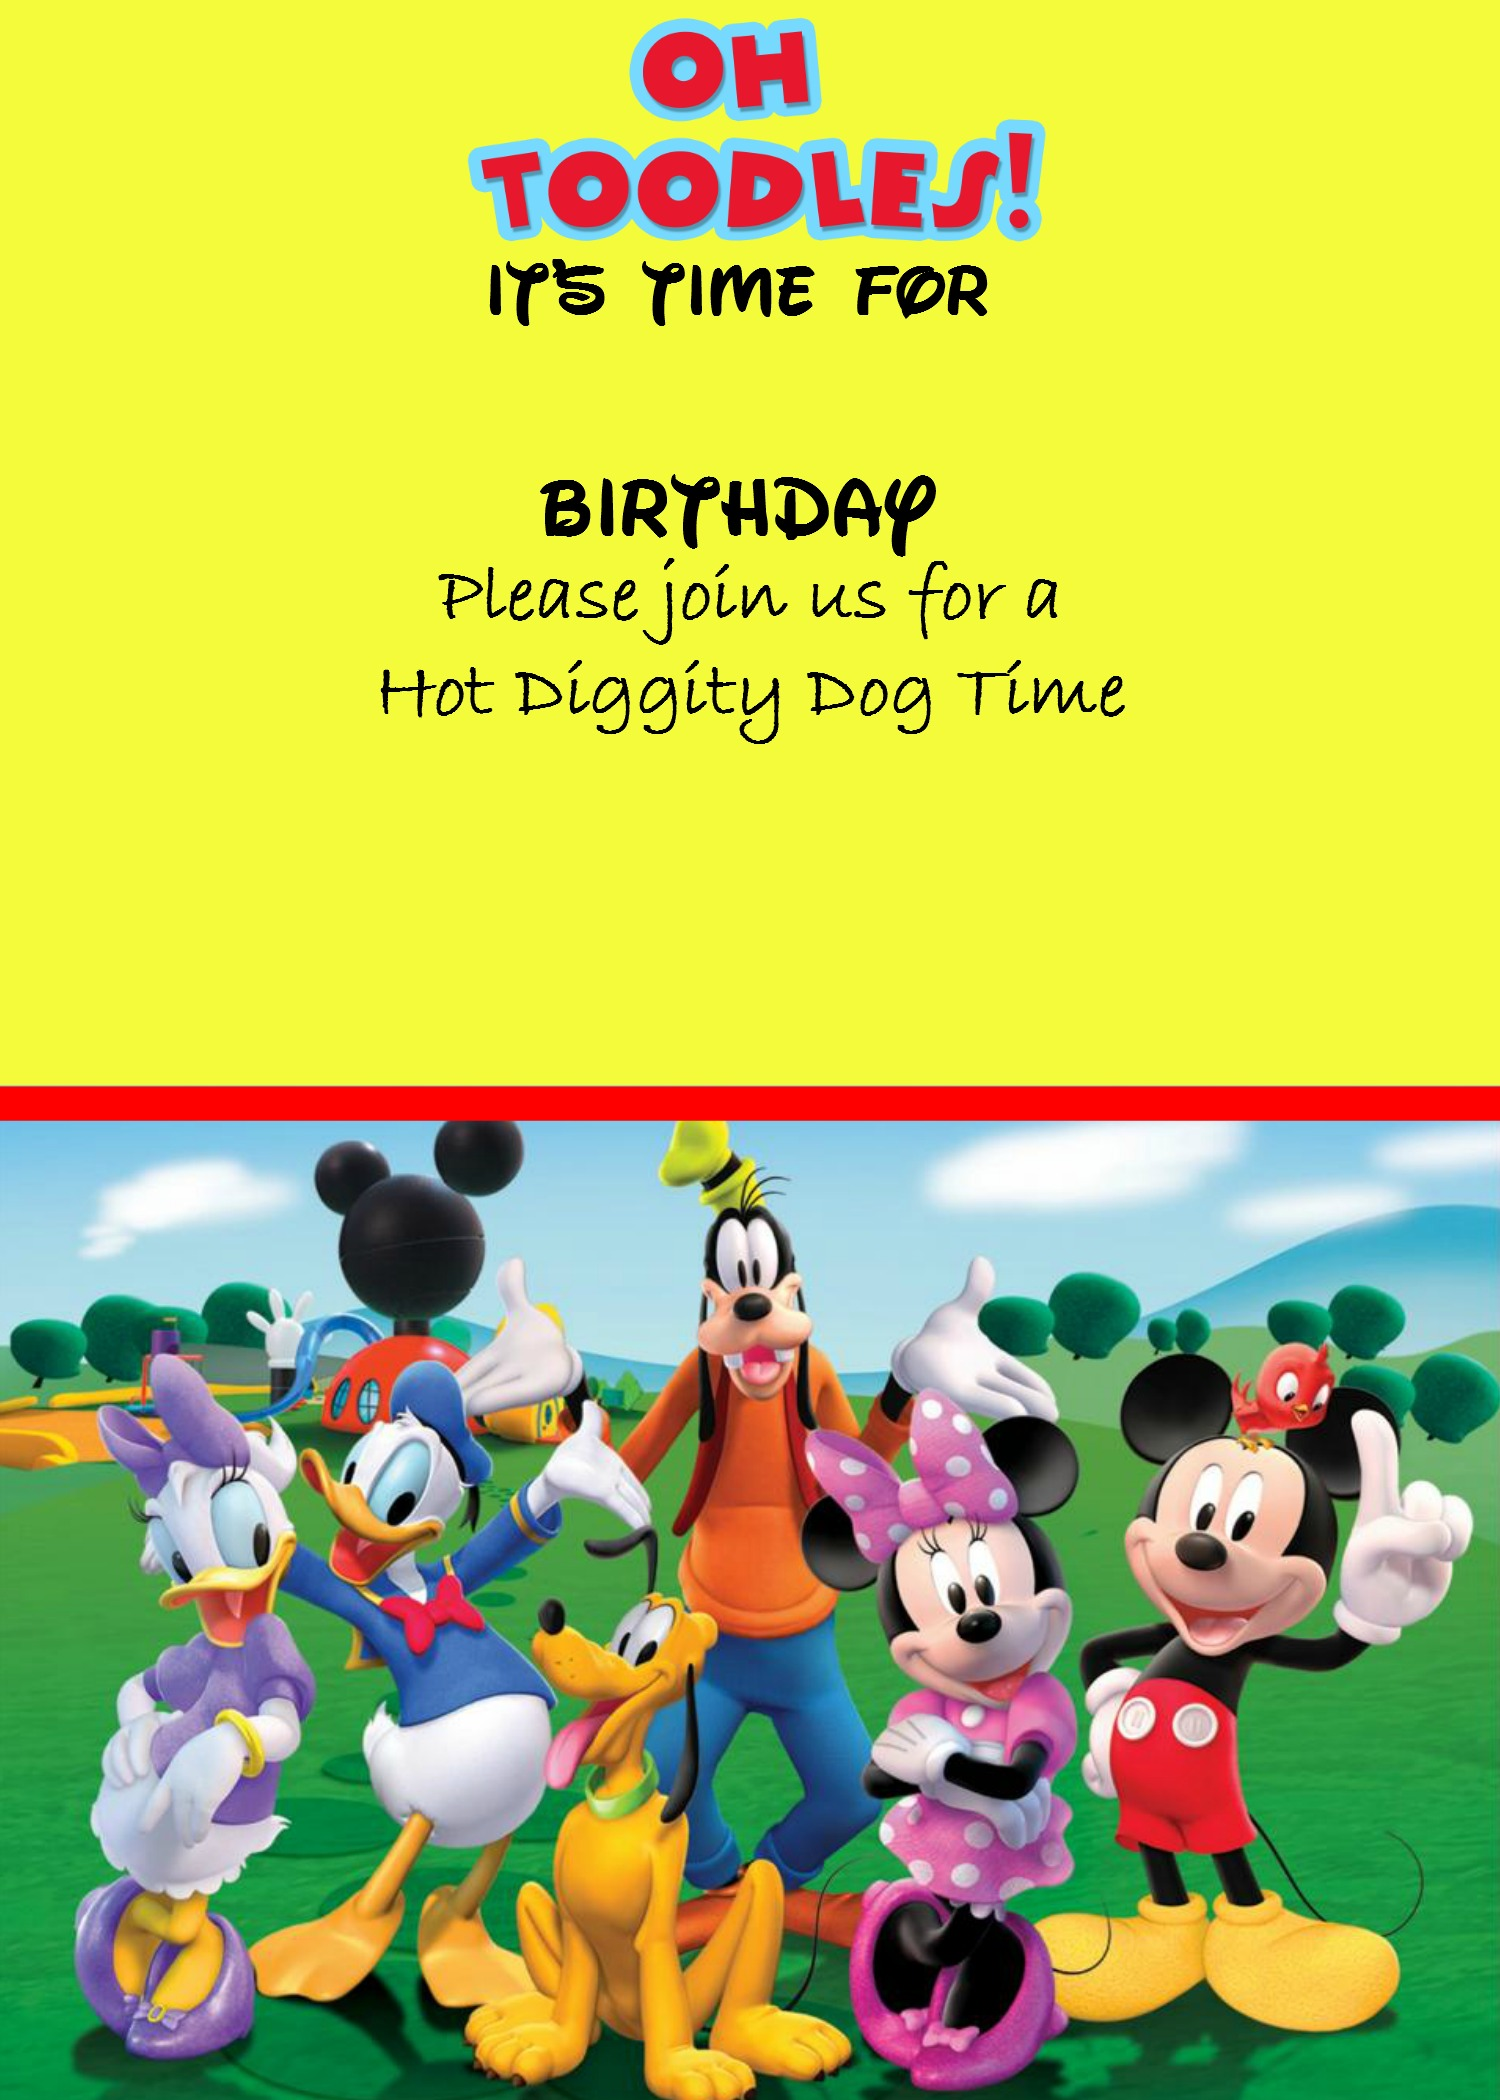 how to make a mickey mouse digital invitation image how to make a mickey mouse digital invitation picmonkey option 2